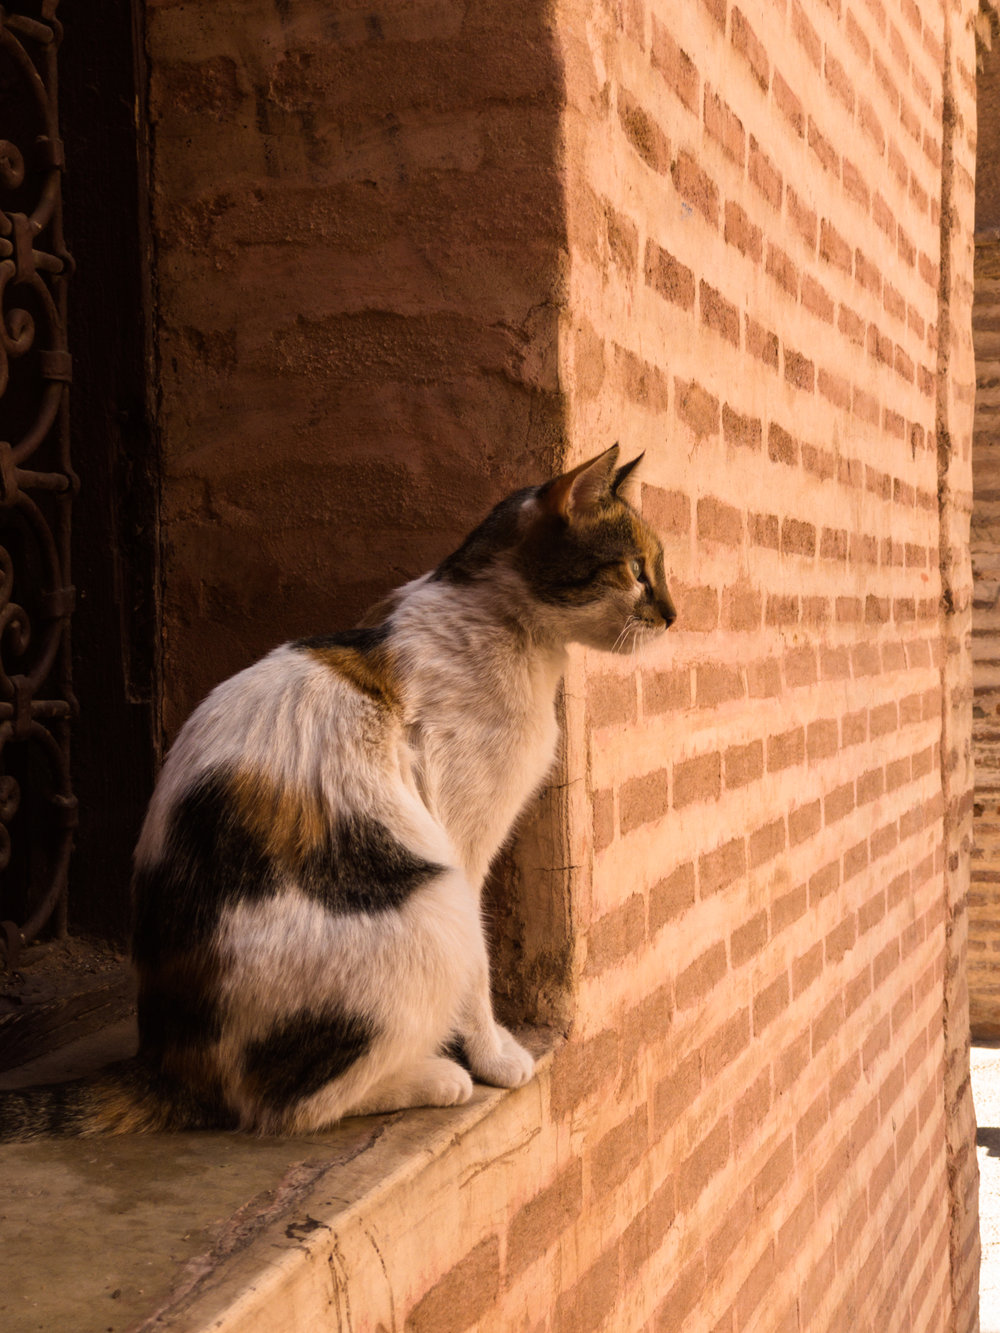 Marrakech_iPhone8+_Photos - Blog_Photos-16.jpg